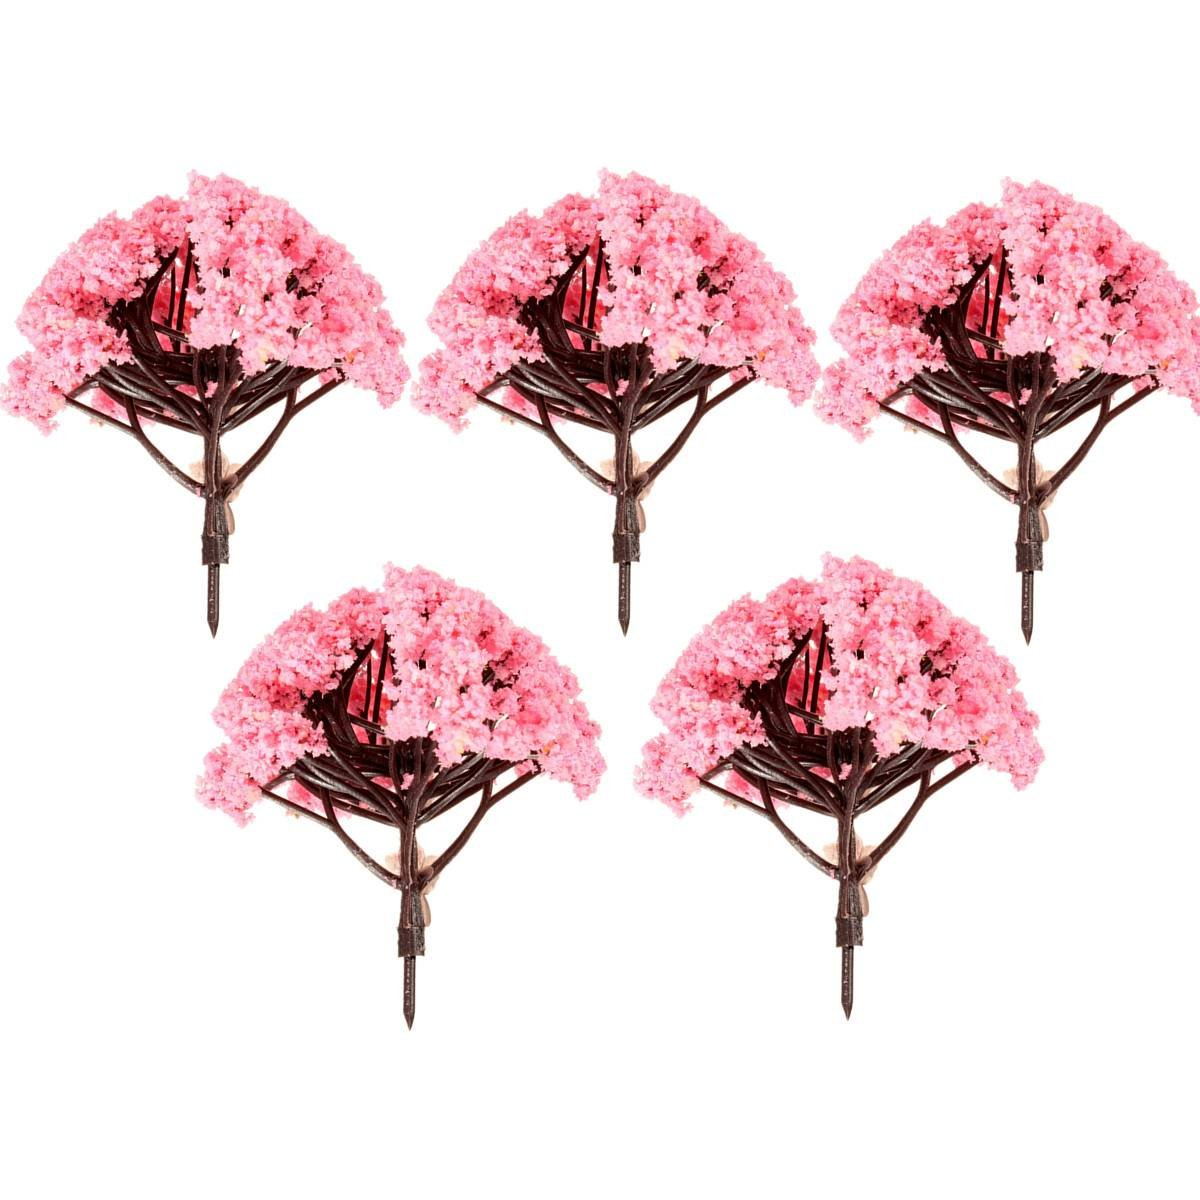 Online get cheap miniature flowering trees aliexpress 5pcs pink flower tree miniature fairy garden dollhouse layout model decor ornament 8cmchina dhlflorist Image collections